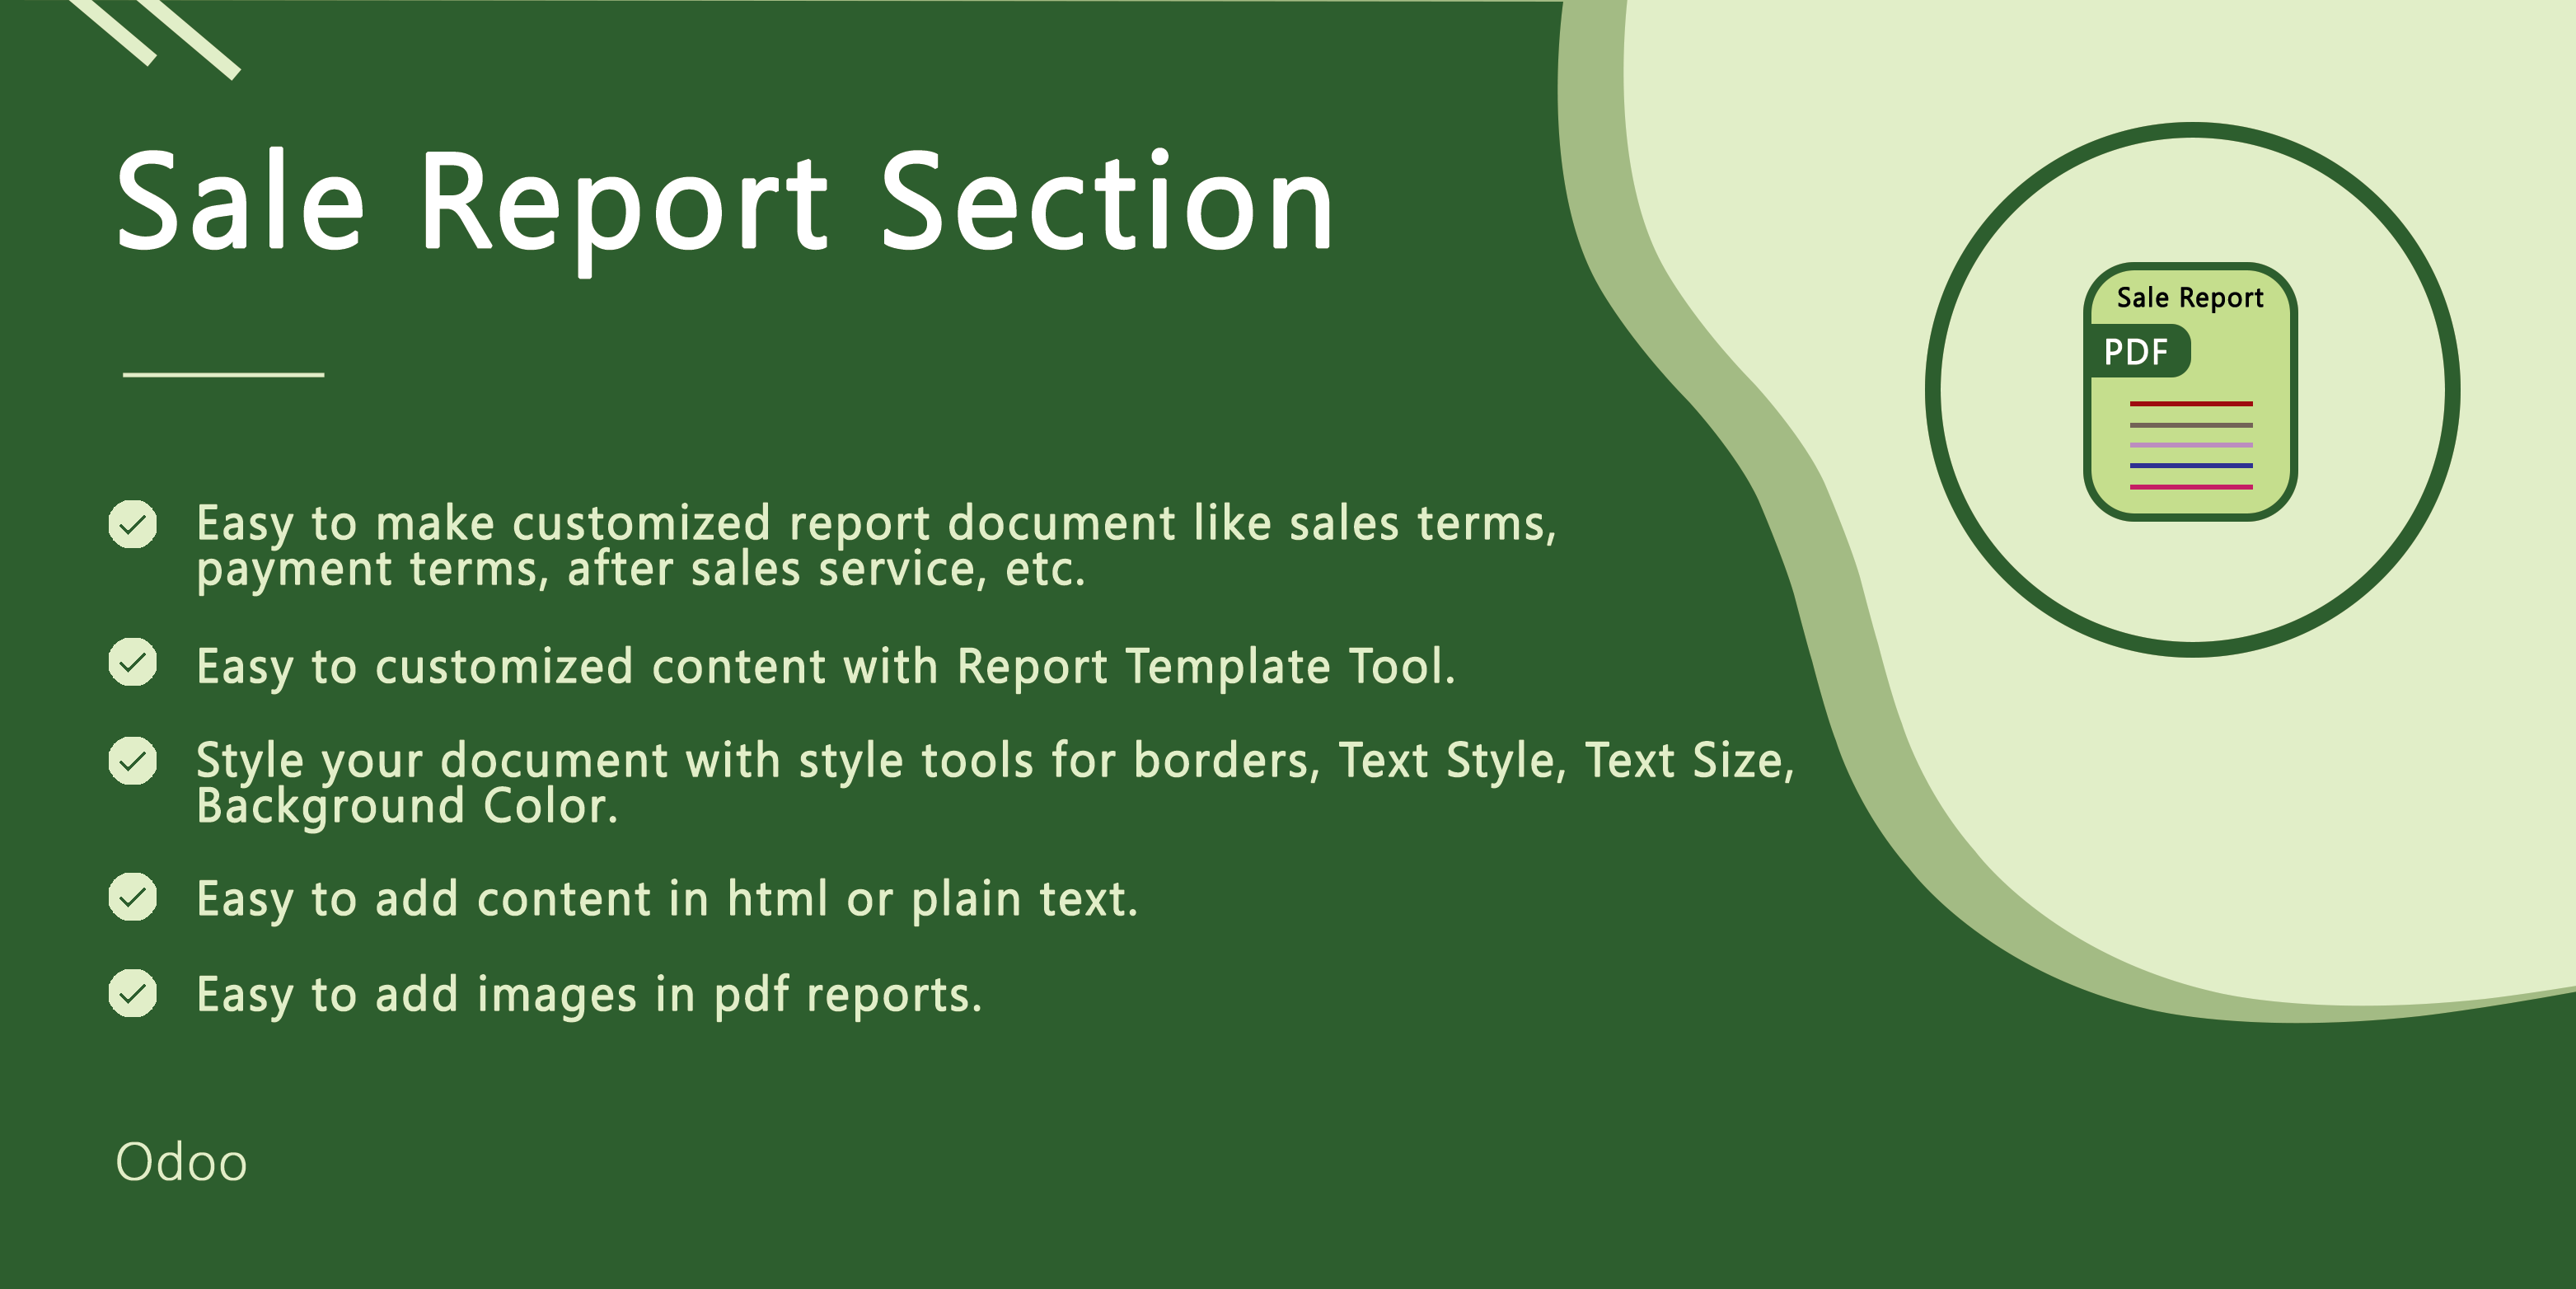 Sale Reprot Section